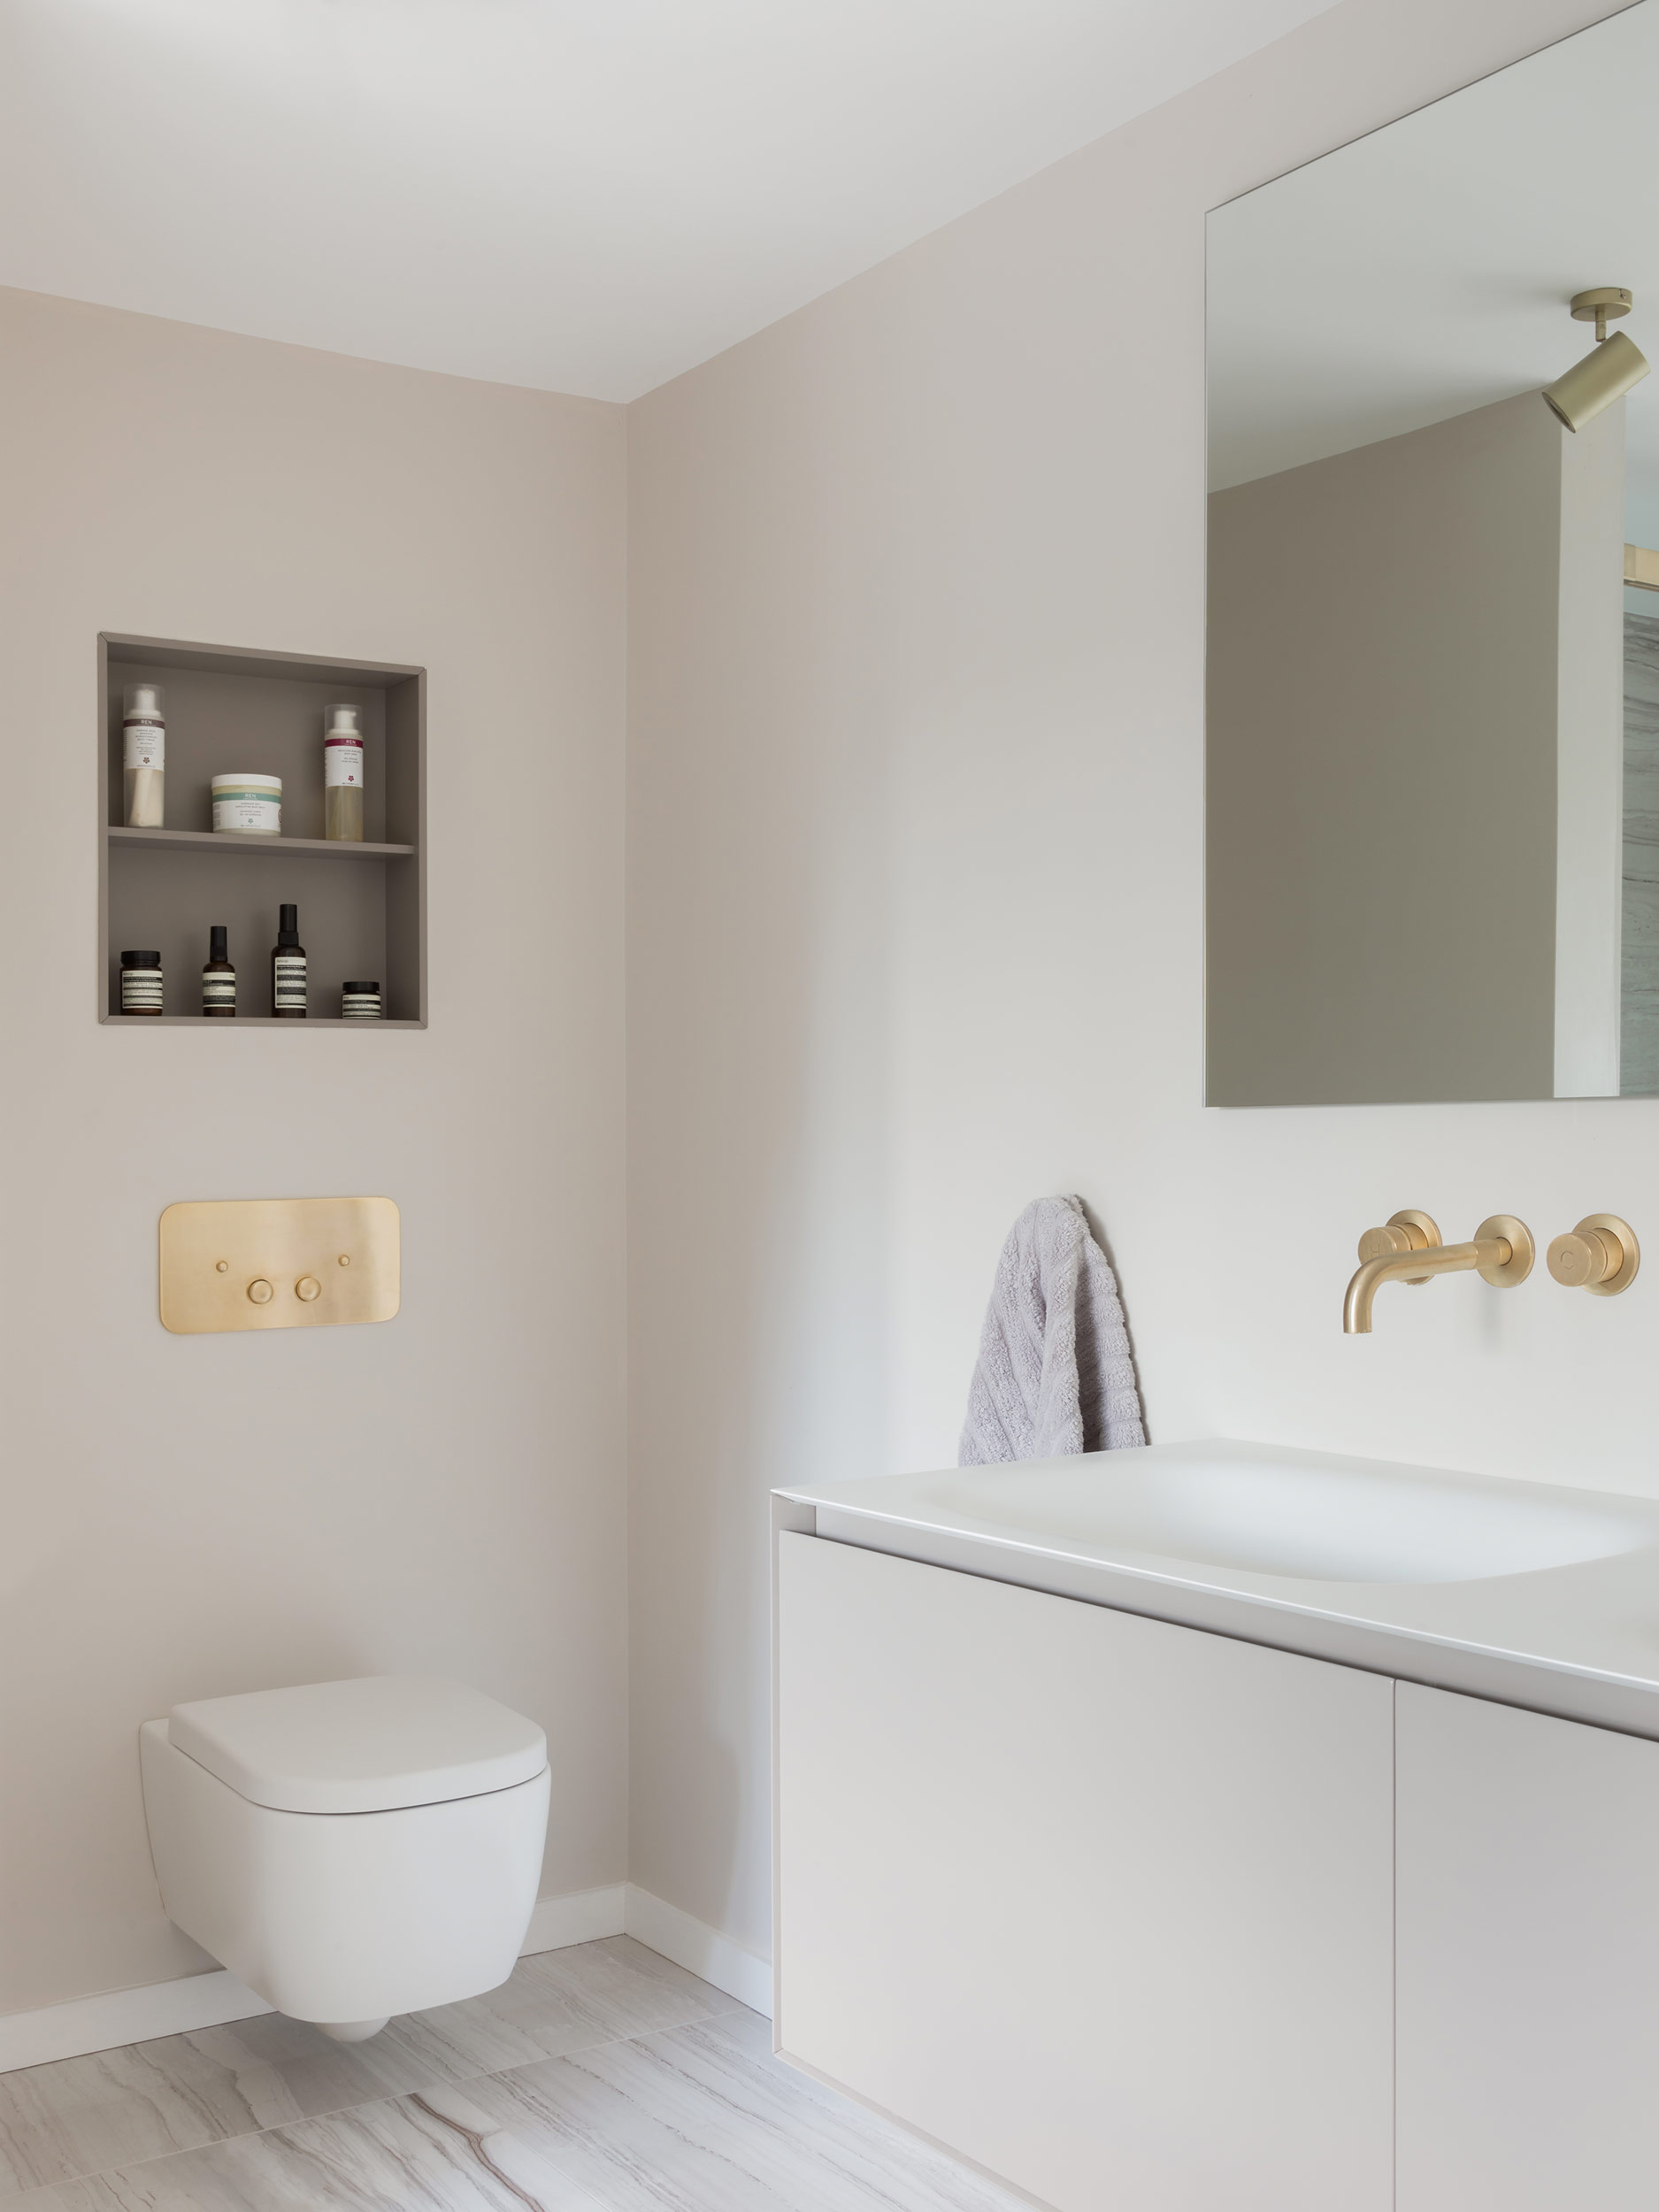 West One Bathrooms Case Studies The Master Suite 3a